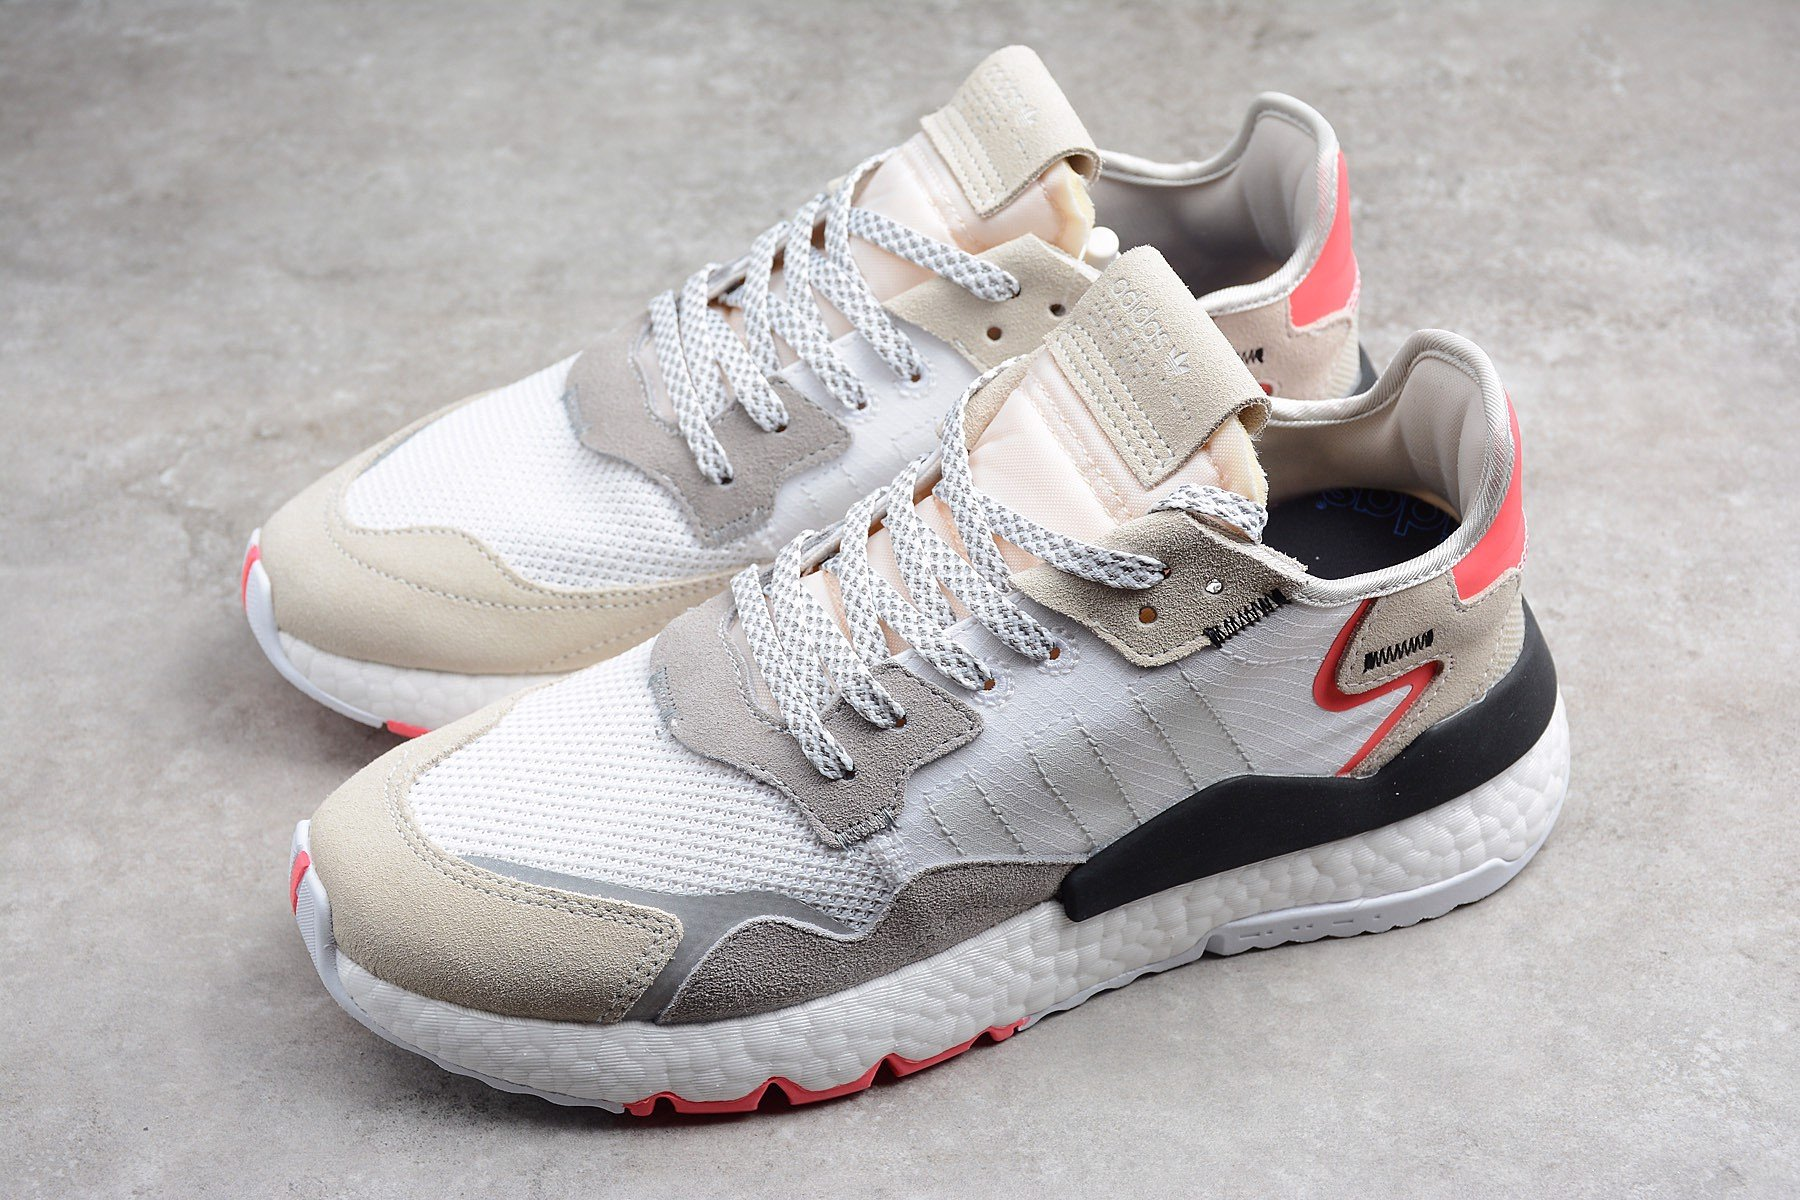 Adidas Nite Jogger 'White Shock Red' F34123